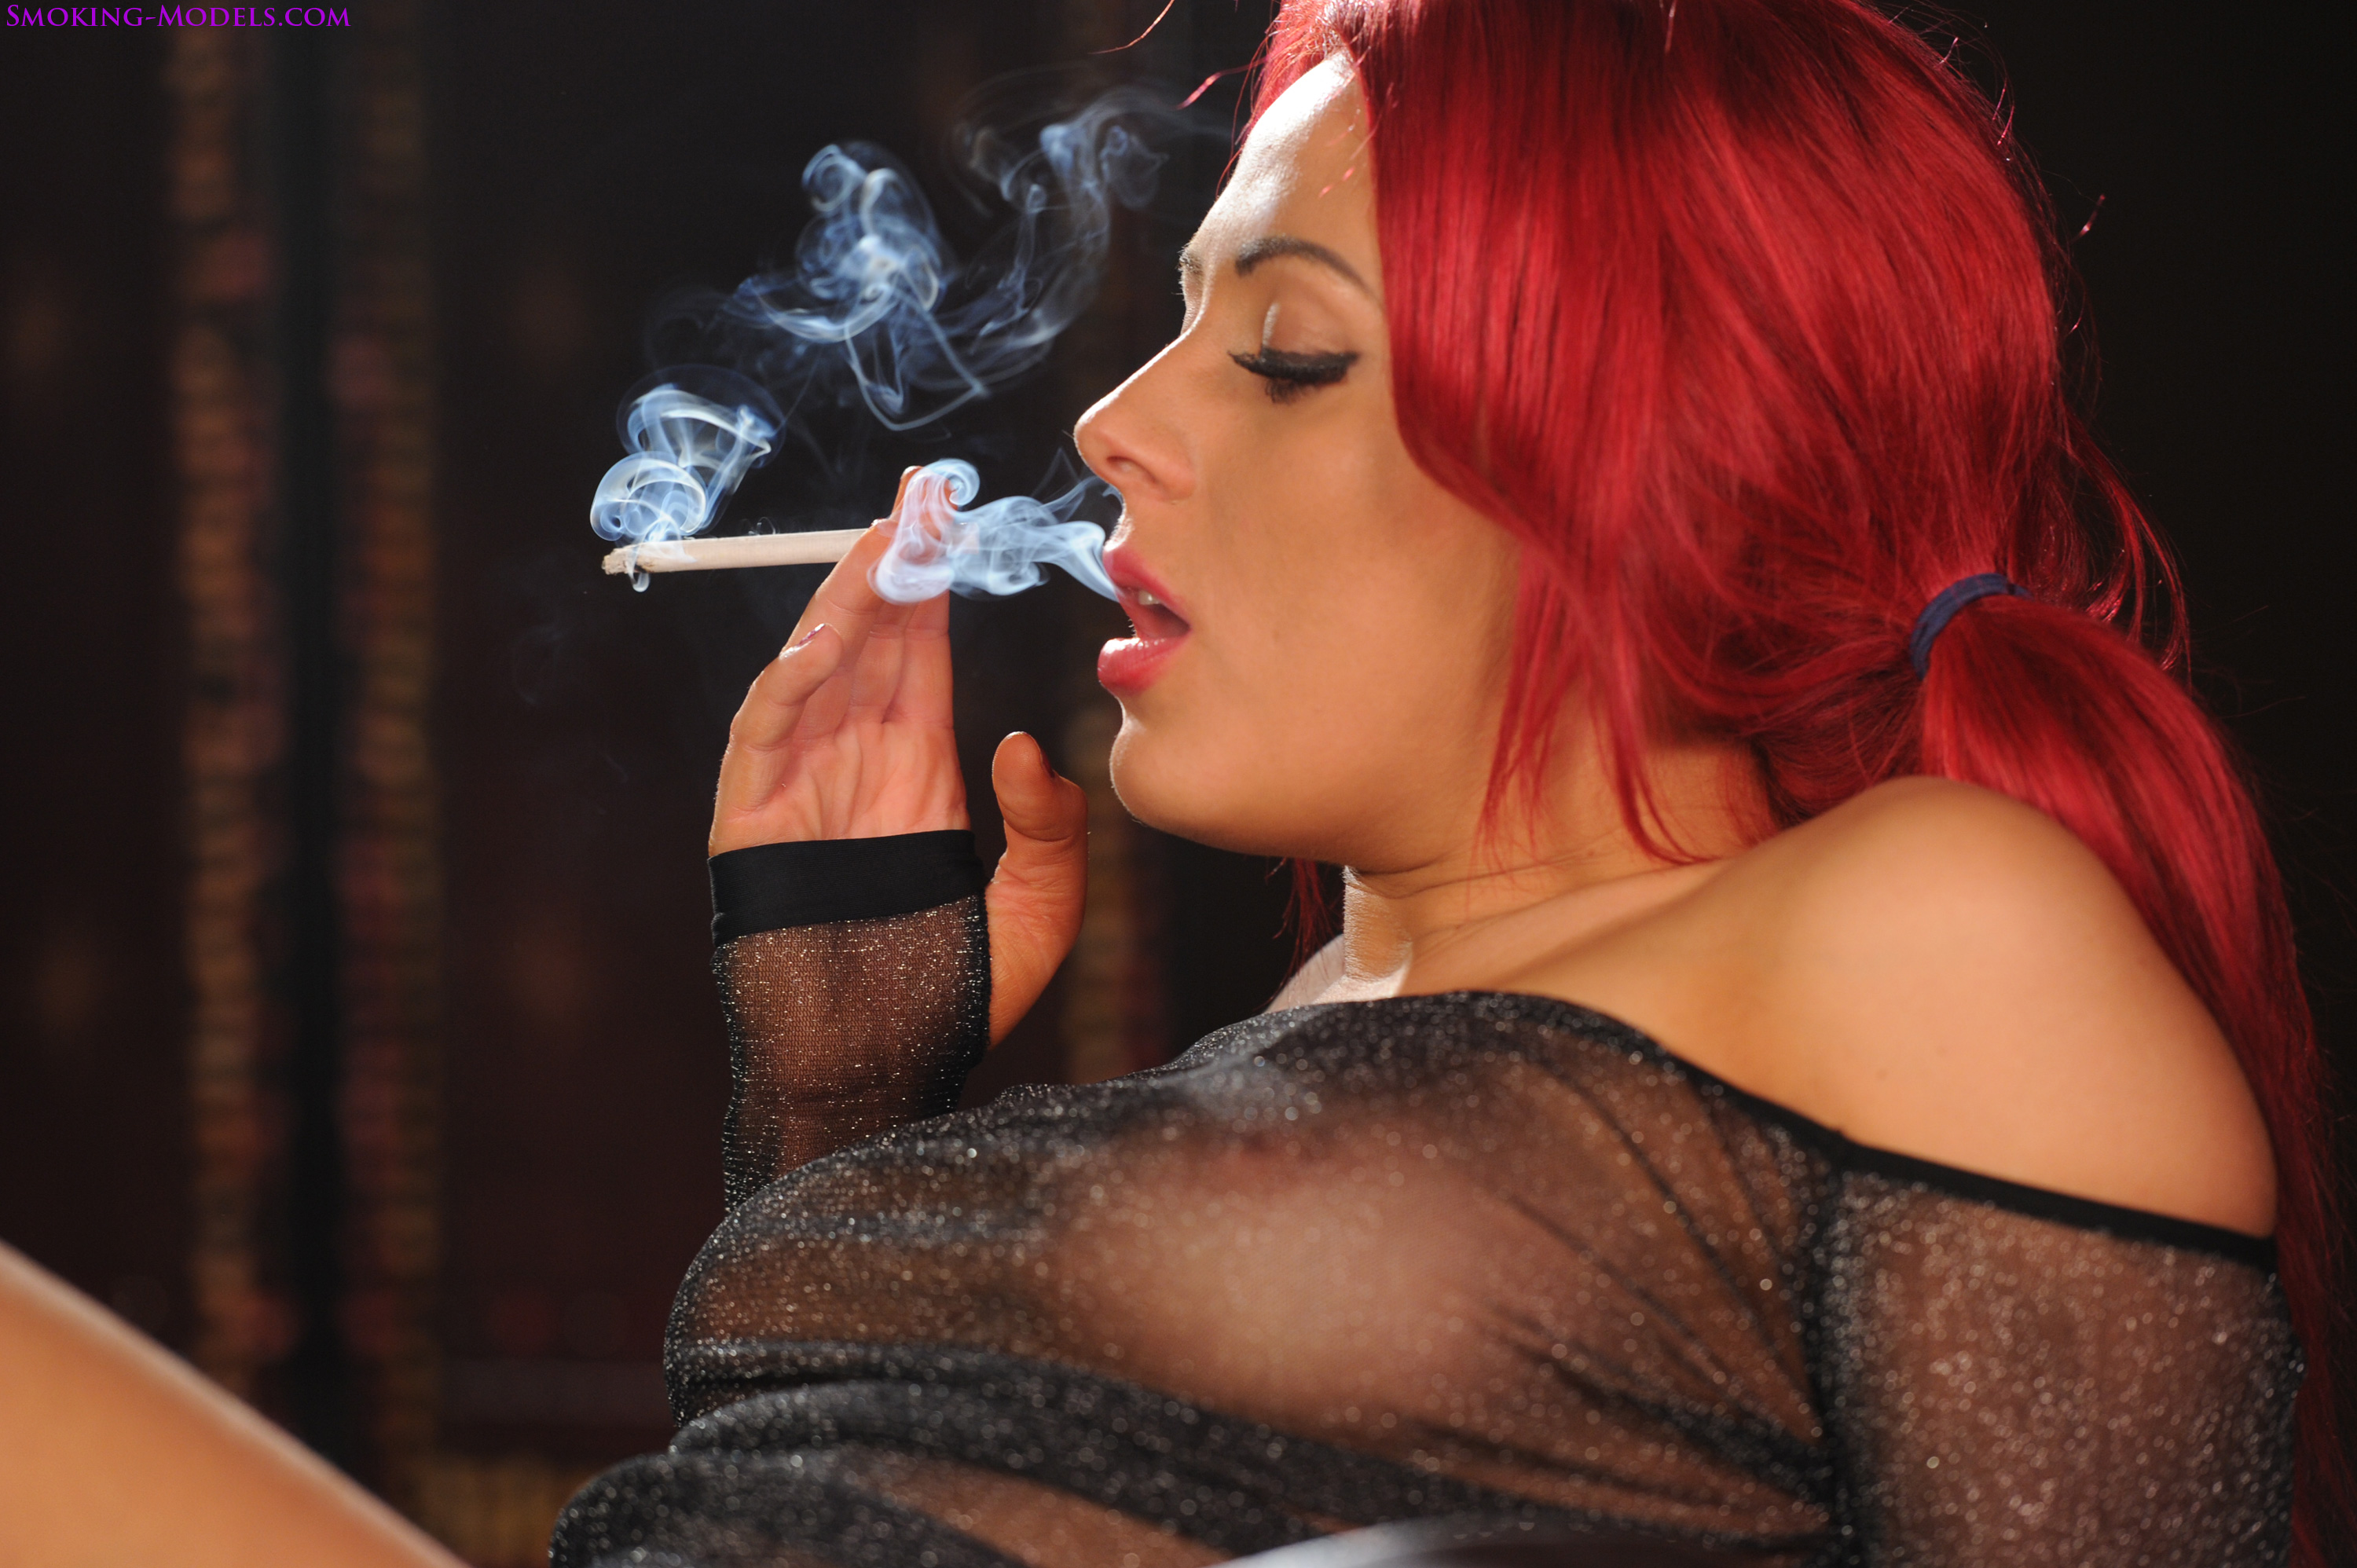 smoking fetish models